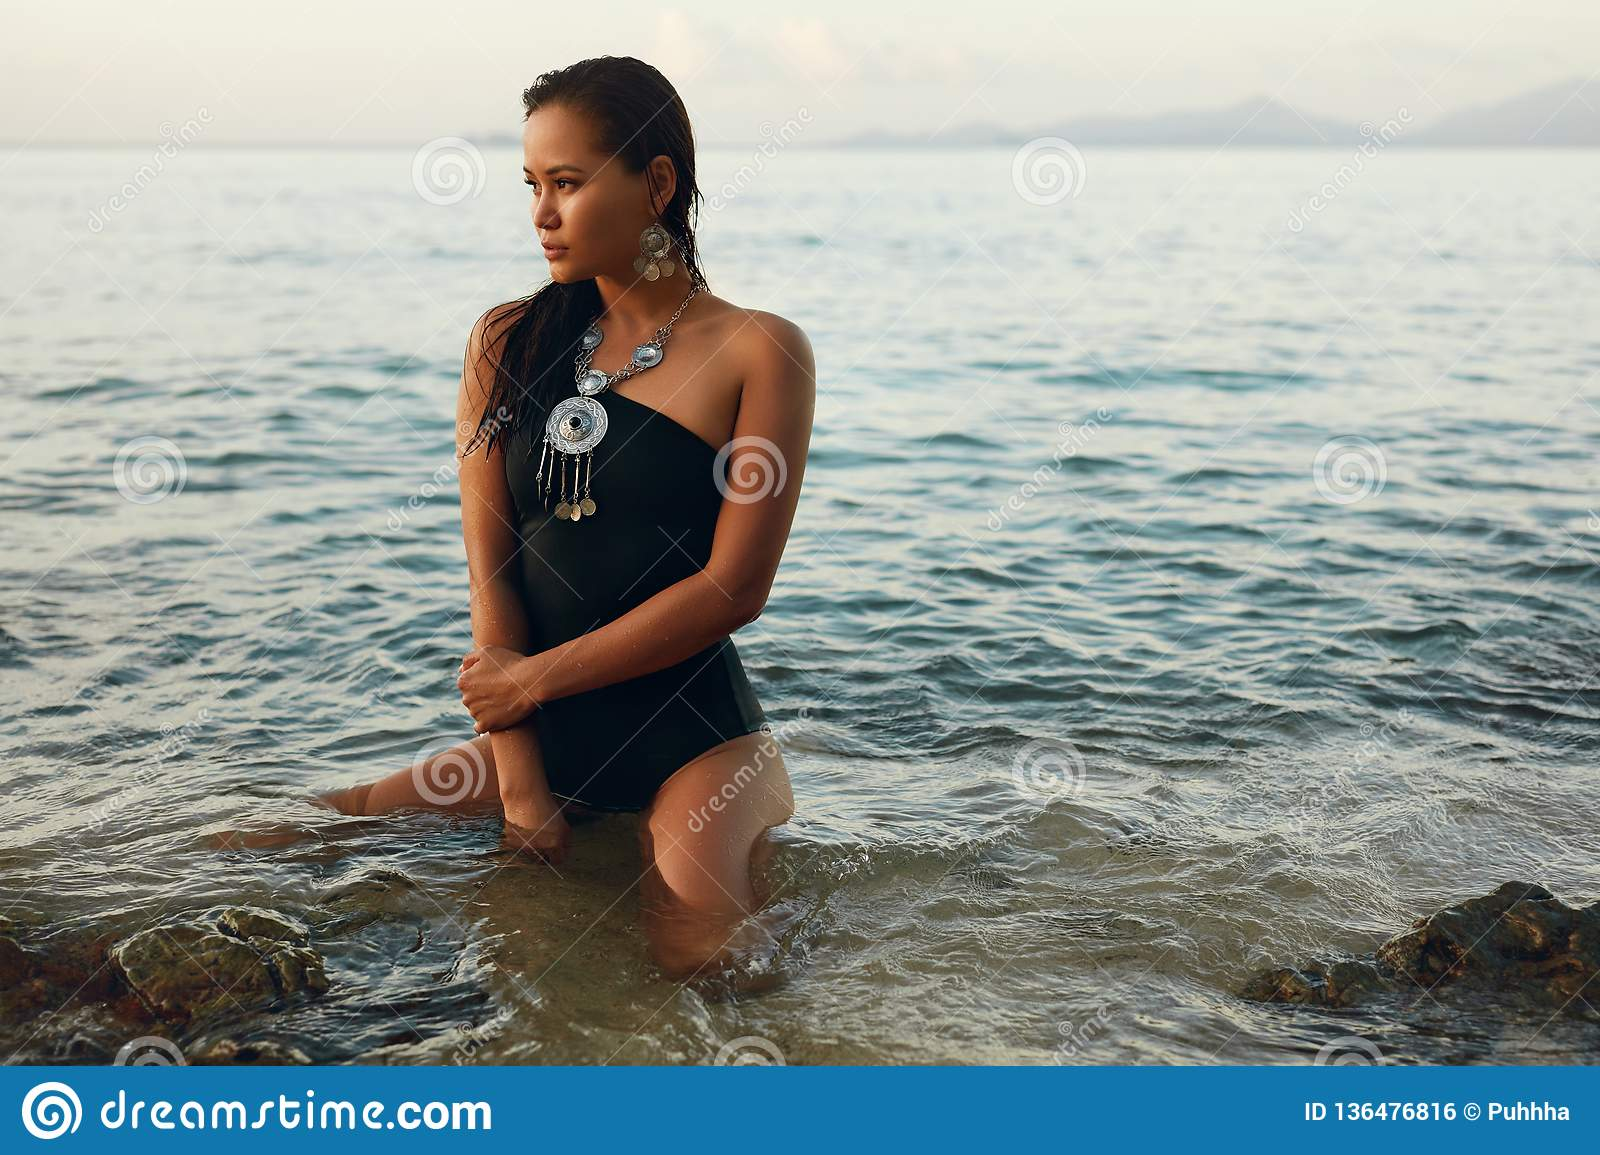 Summer Fashion. Asian Woman In Swimsuit On Beach Stock Photo ...